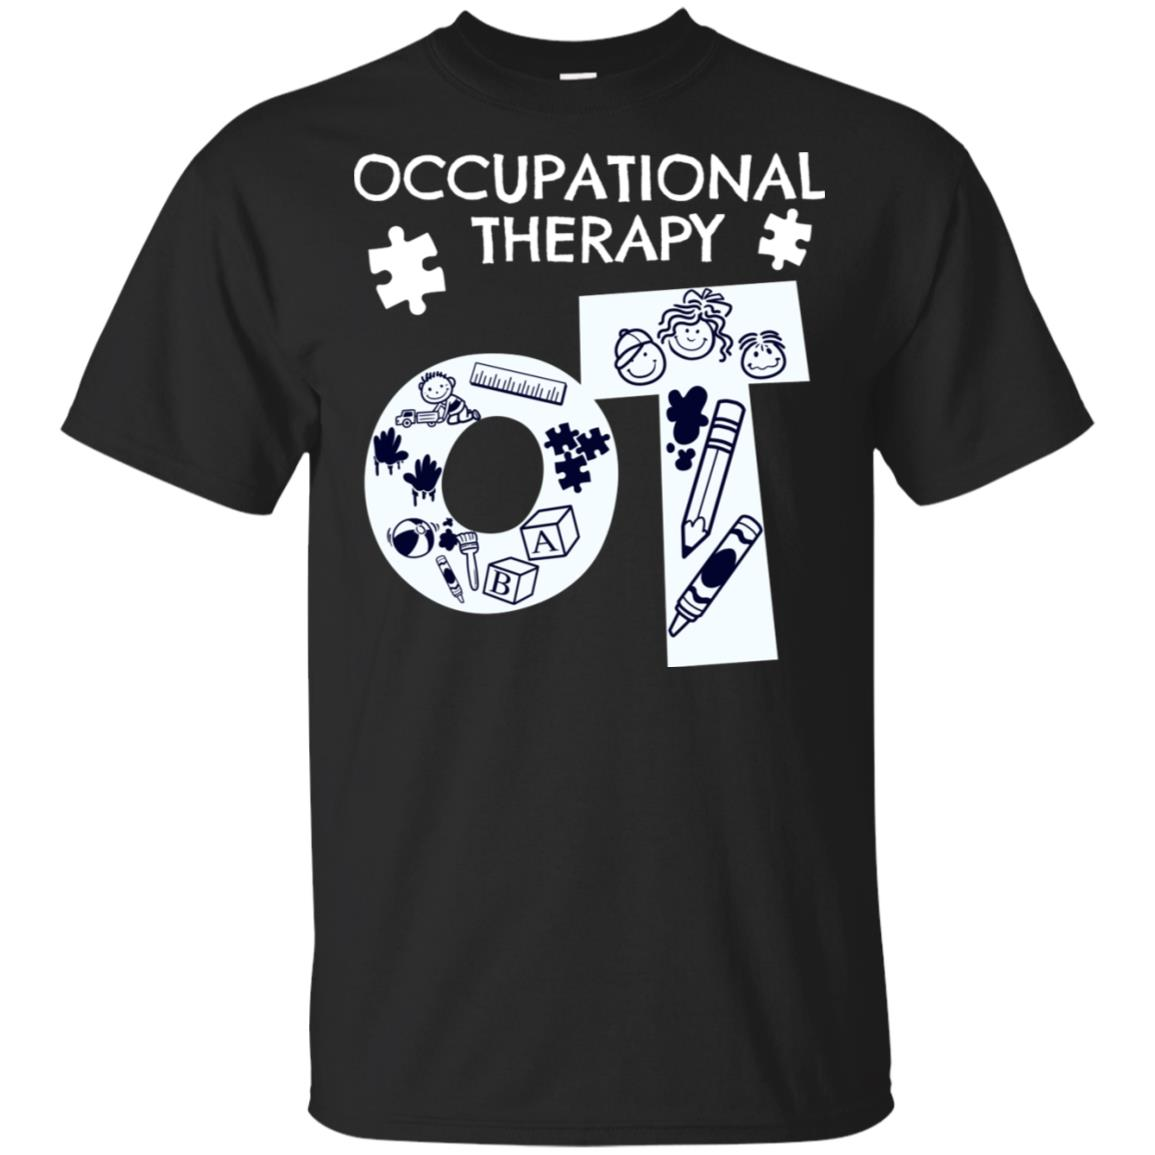 Occupational Therapist Ot Therapy Present Unisex Short Sleeve